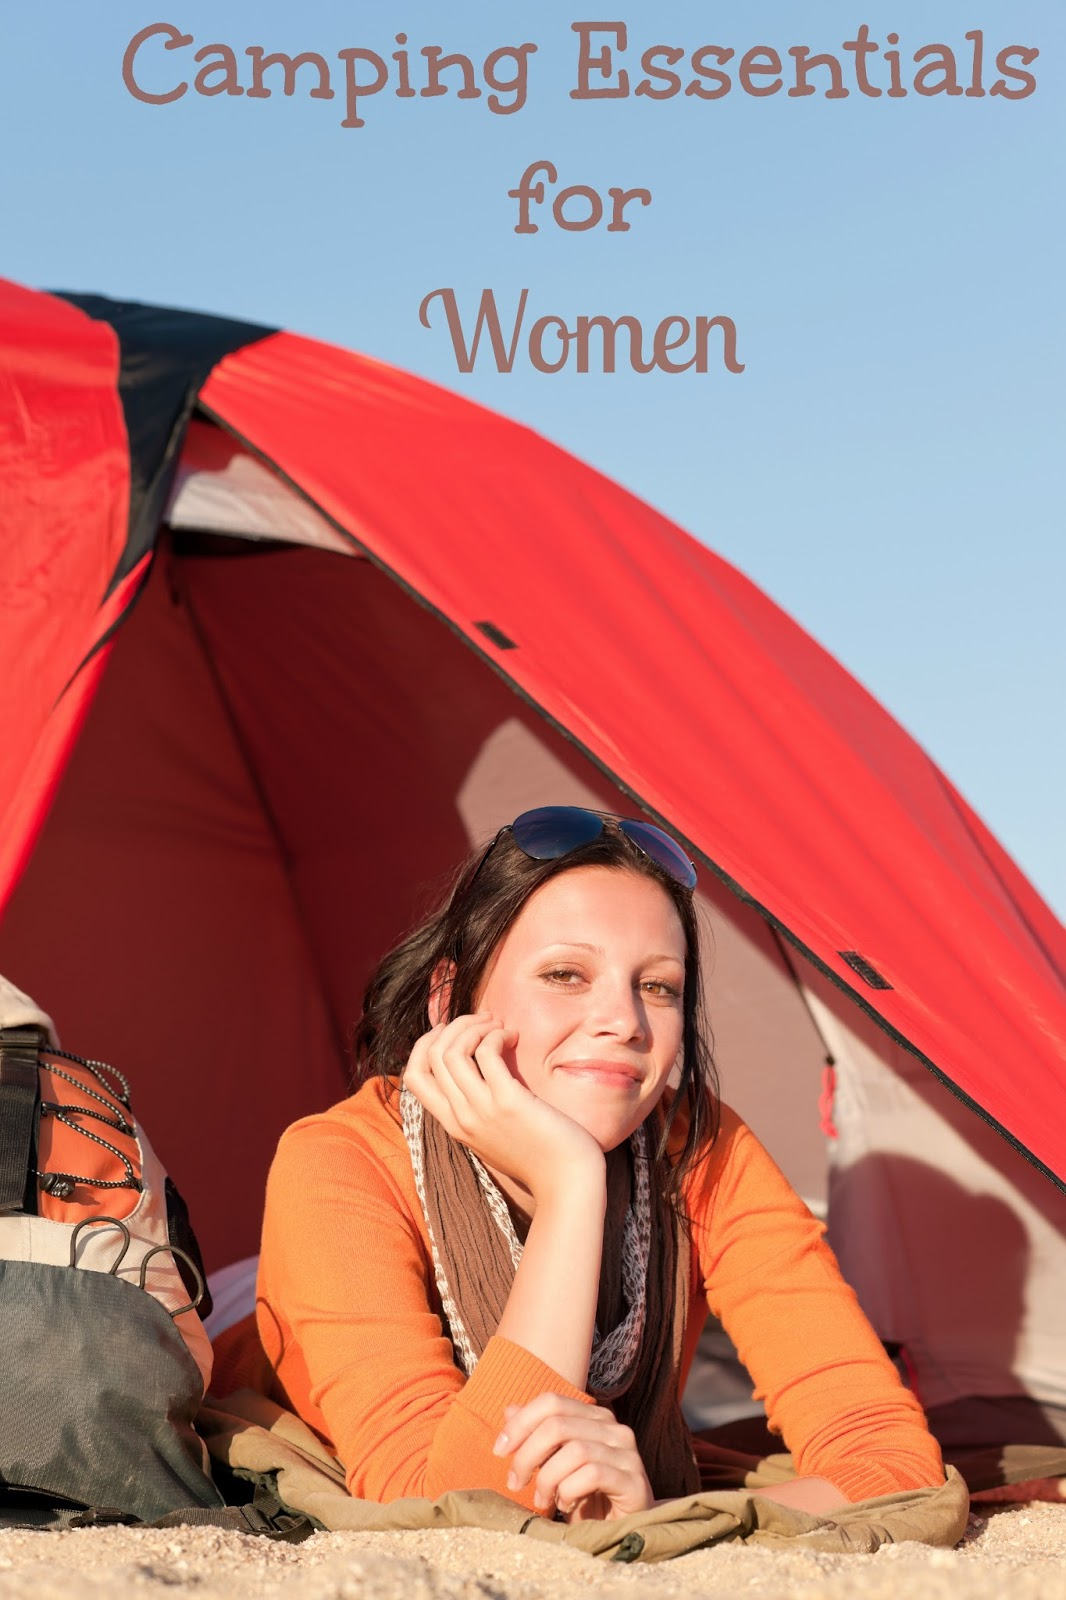 #Camping essentials that no woman should leave home without! #travel #letstalkbums #sp Plus, get $1.50 coupon for Cottonelle now! http://ooh.li/f321045